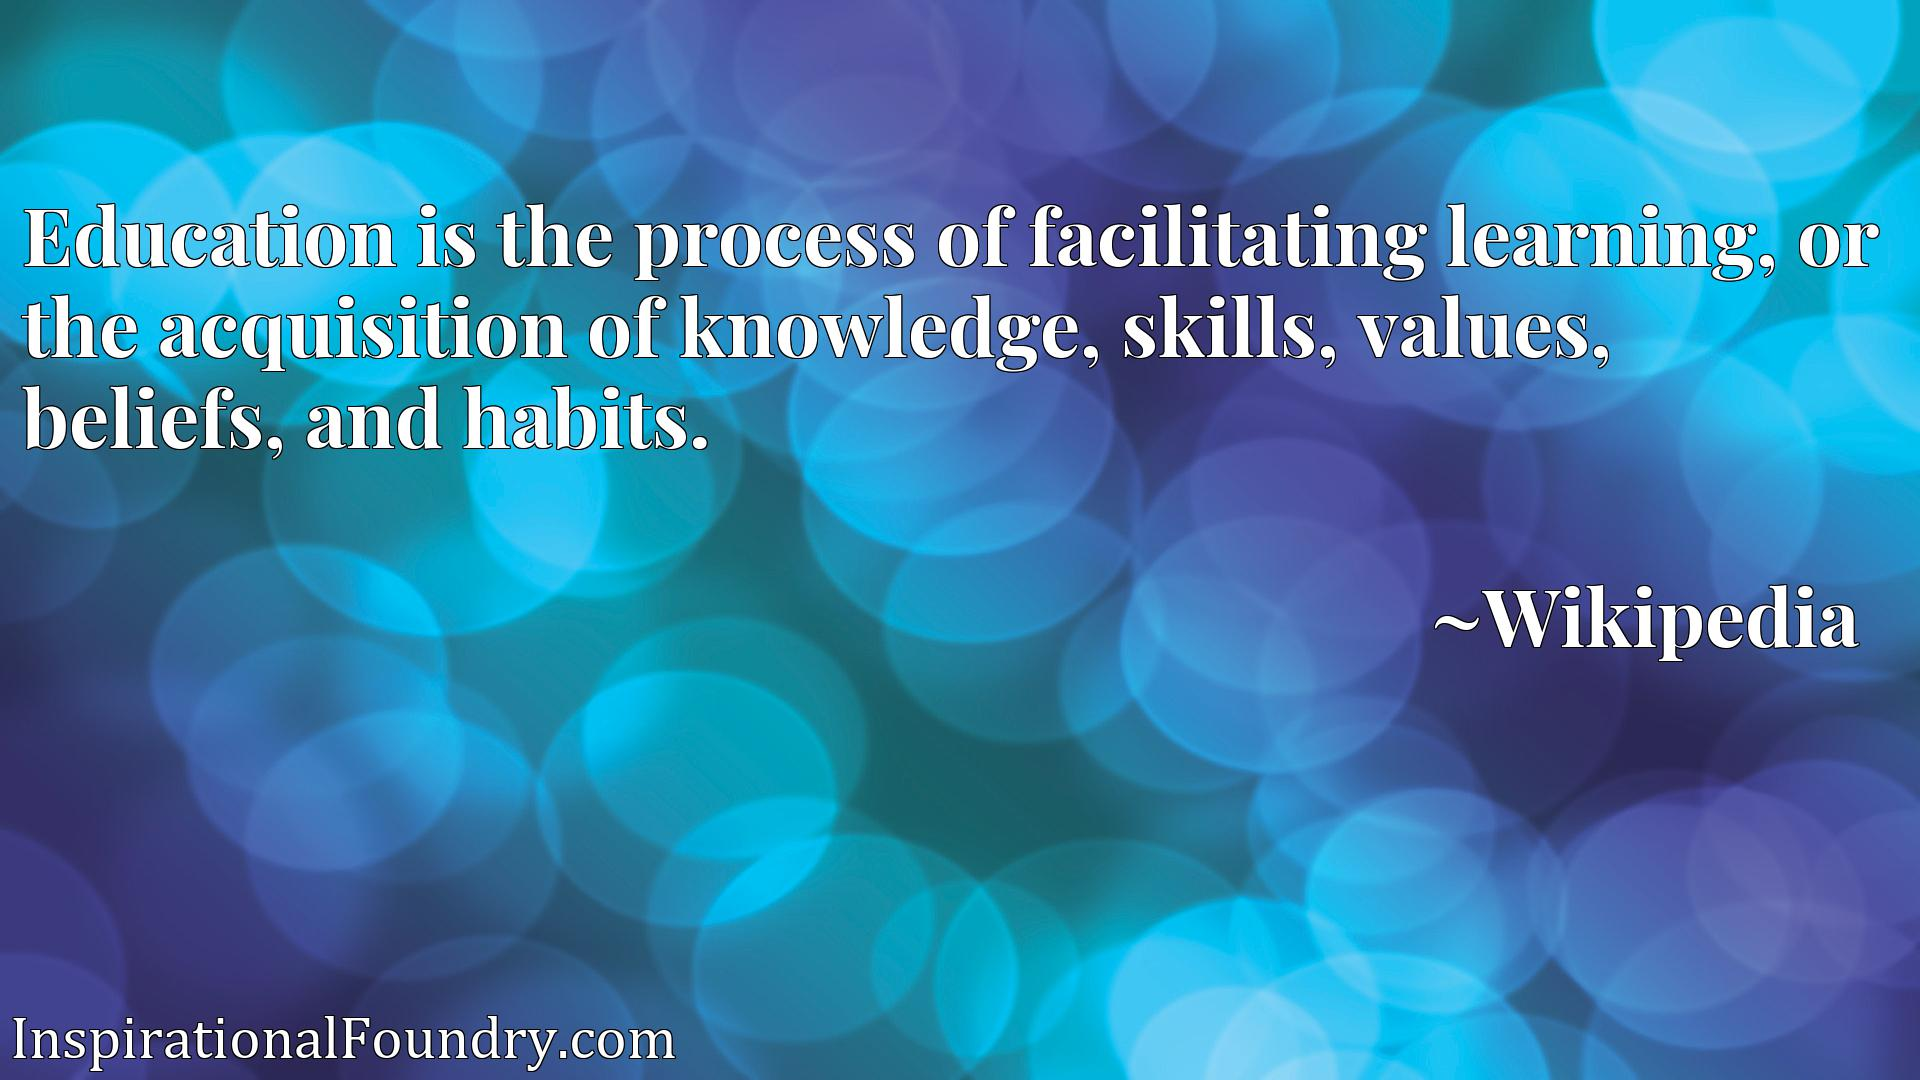 Education is the process of facilitating learning, or the acquisition of knowledge, skills, values, beliefs, and habits.